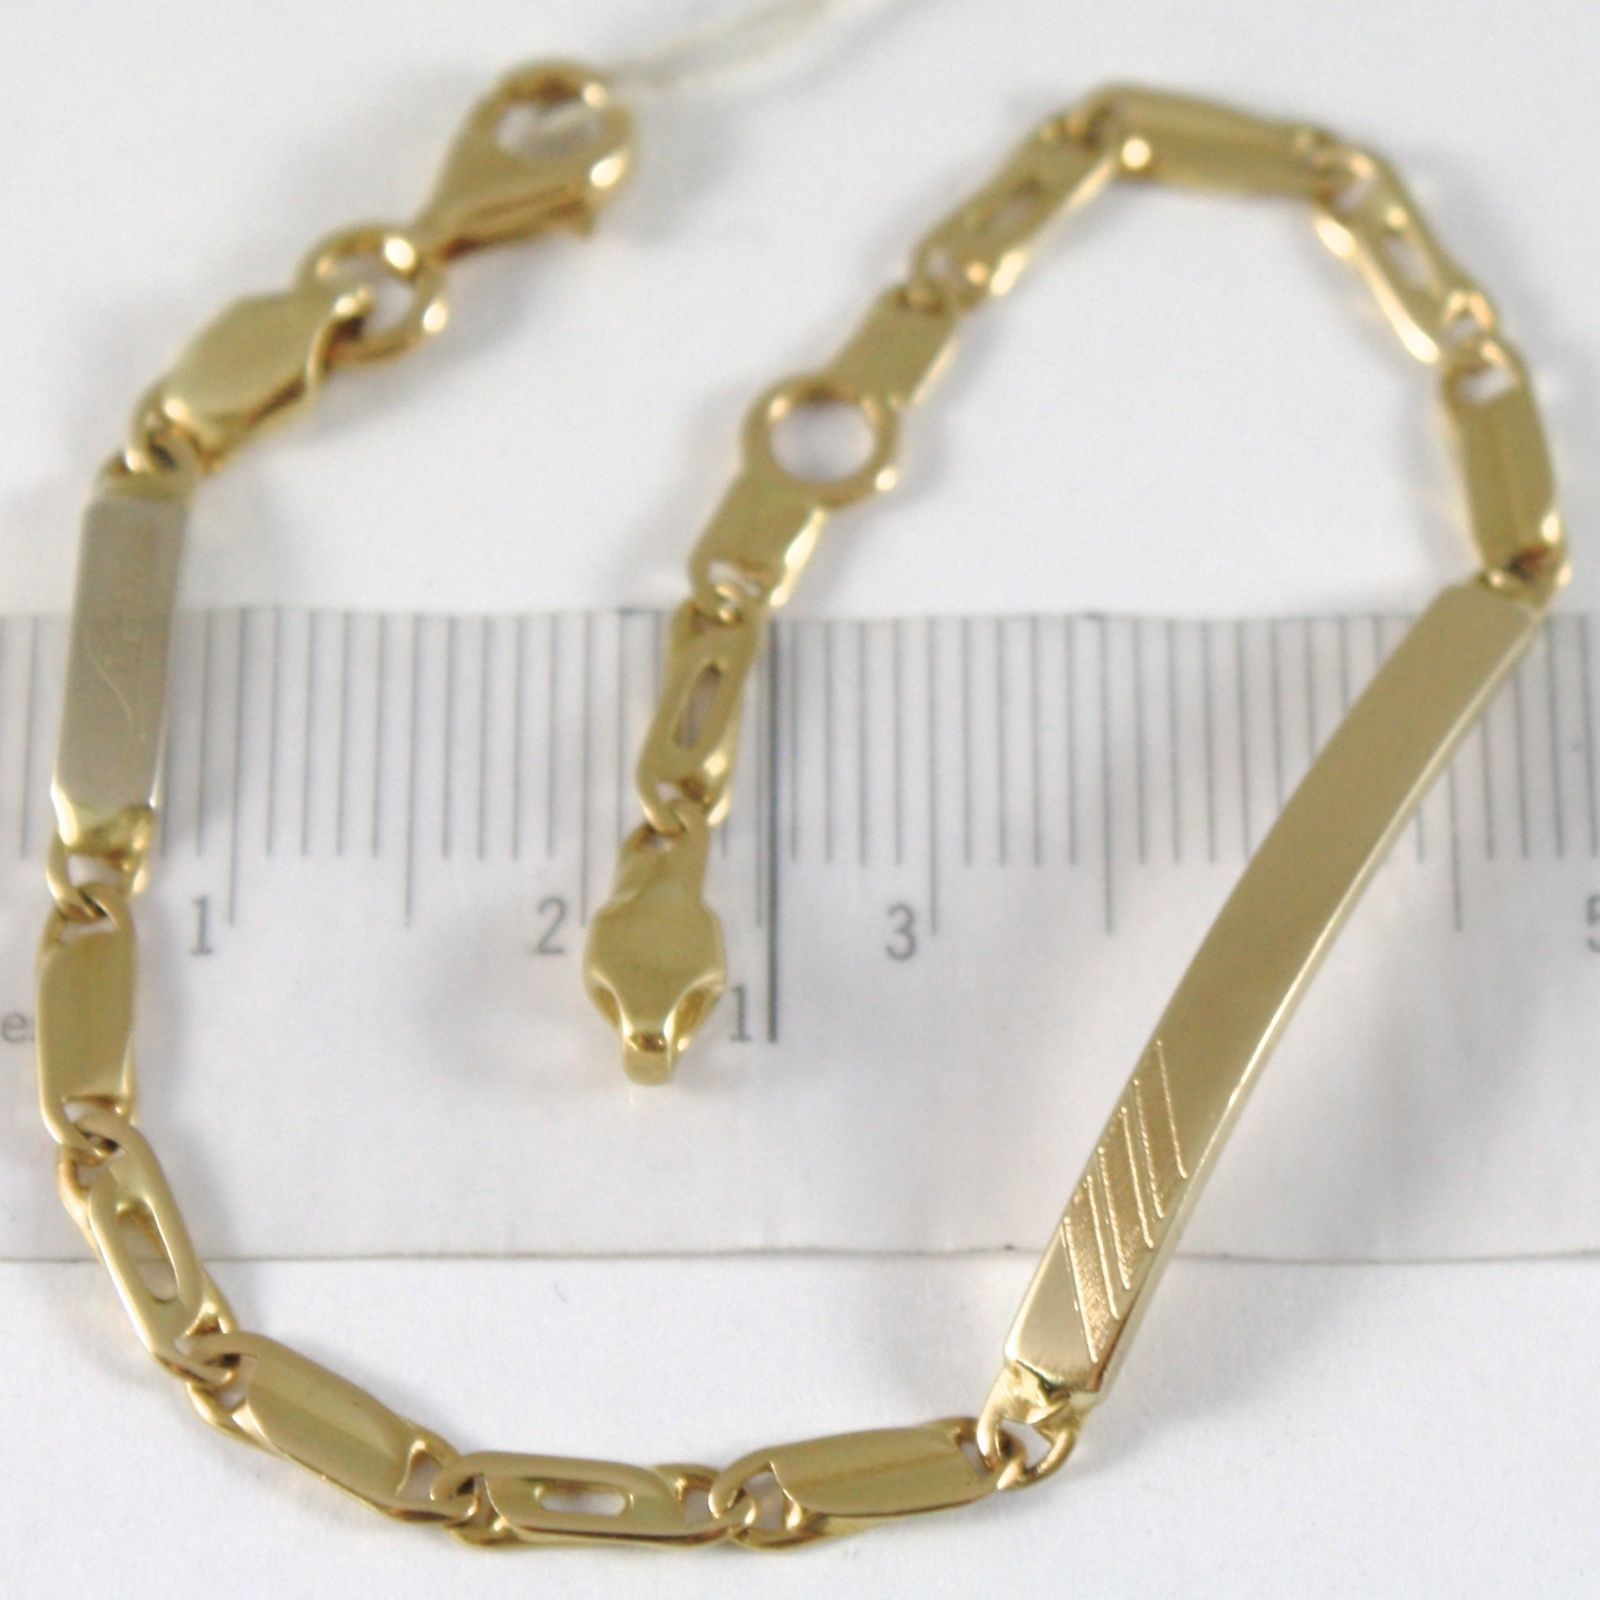 BRACELET YELLOW GOLD 750 18K WITH MESH ALTERNATE AND PLATE FOR INCISION